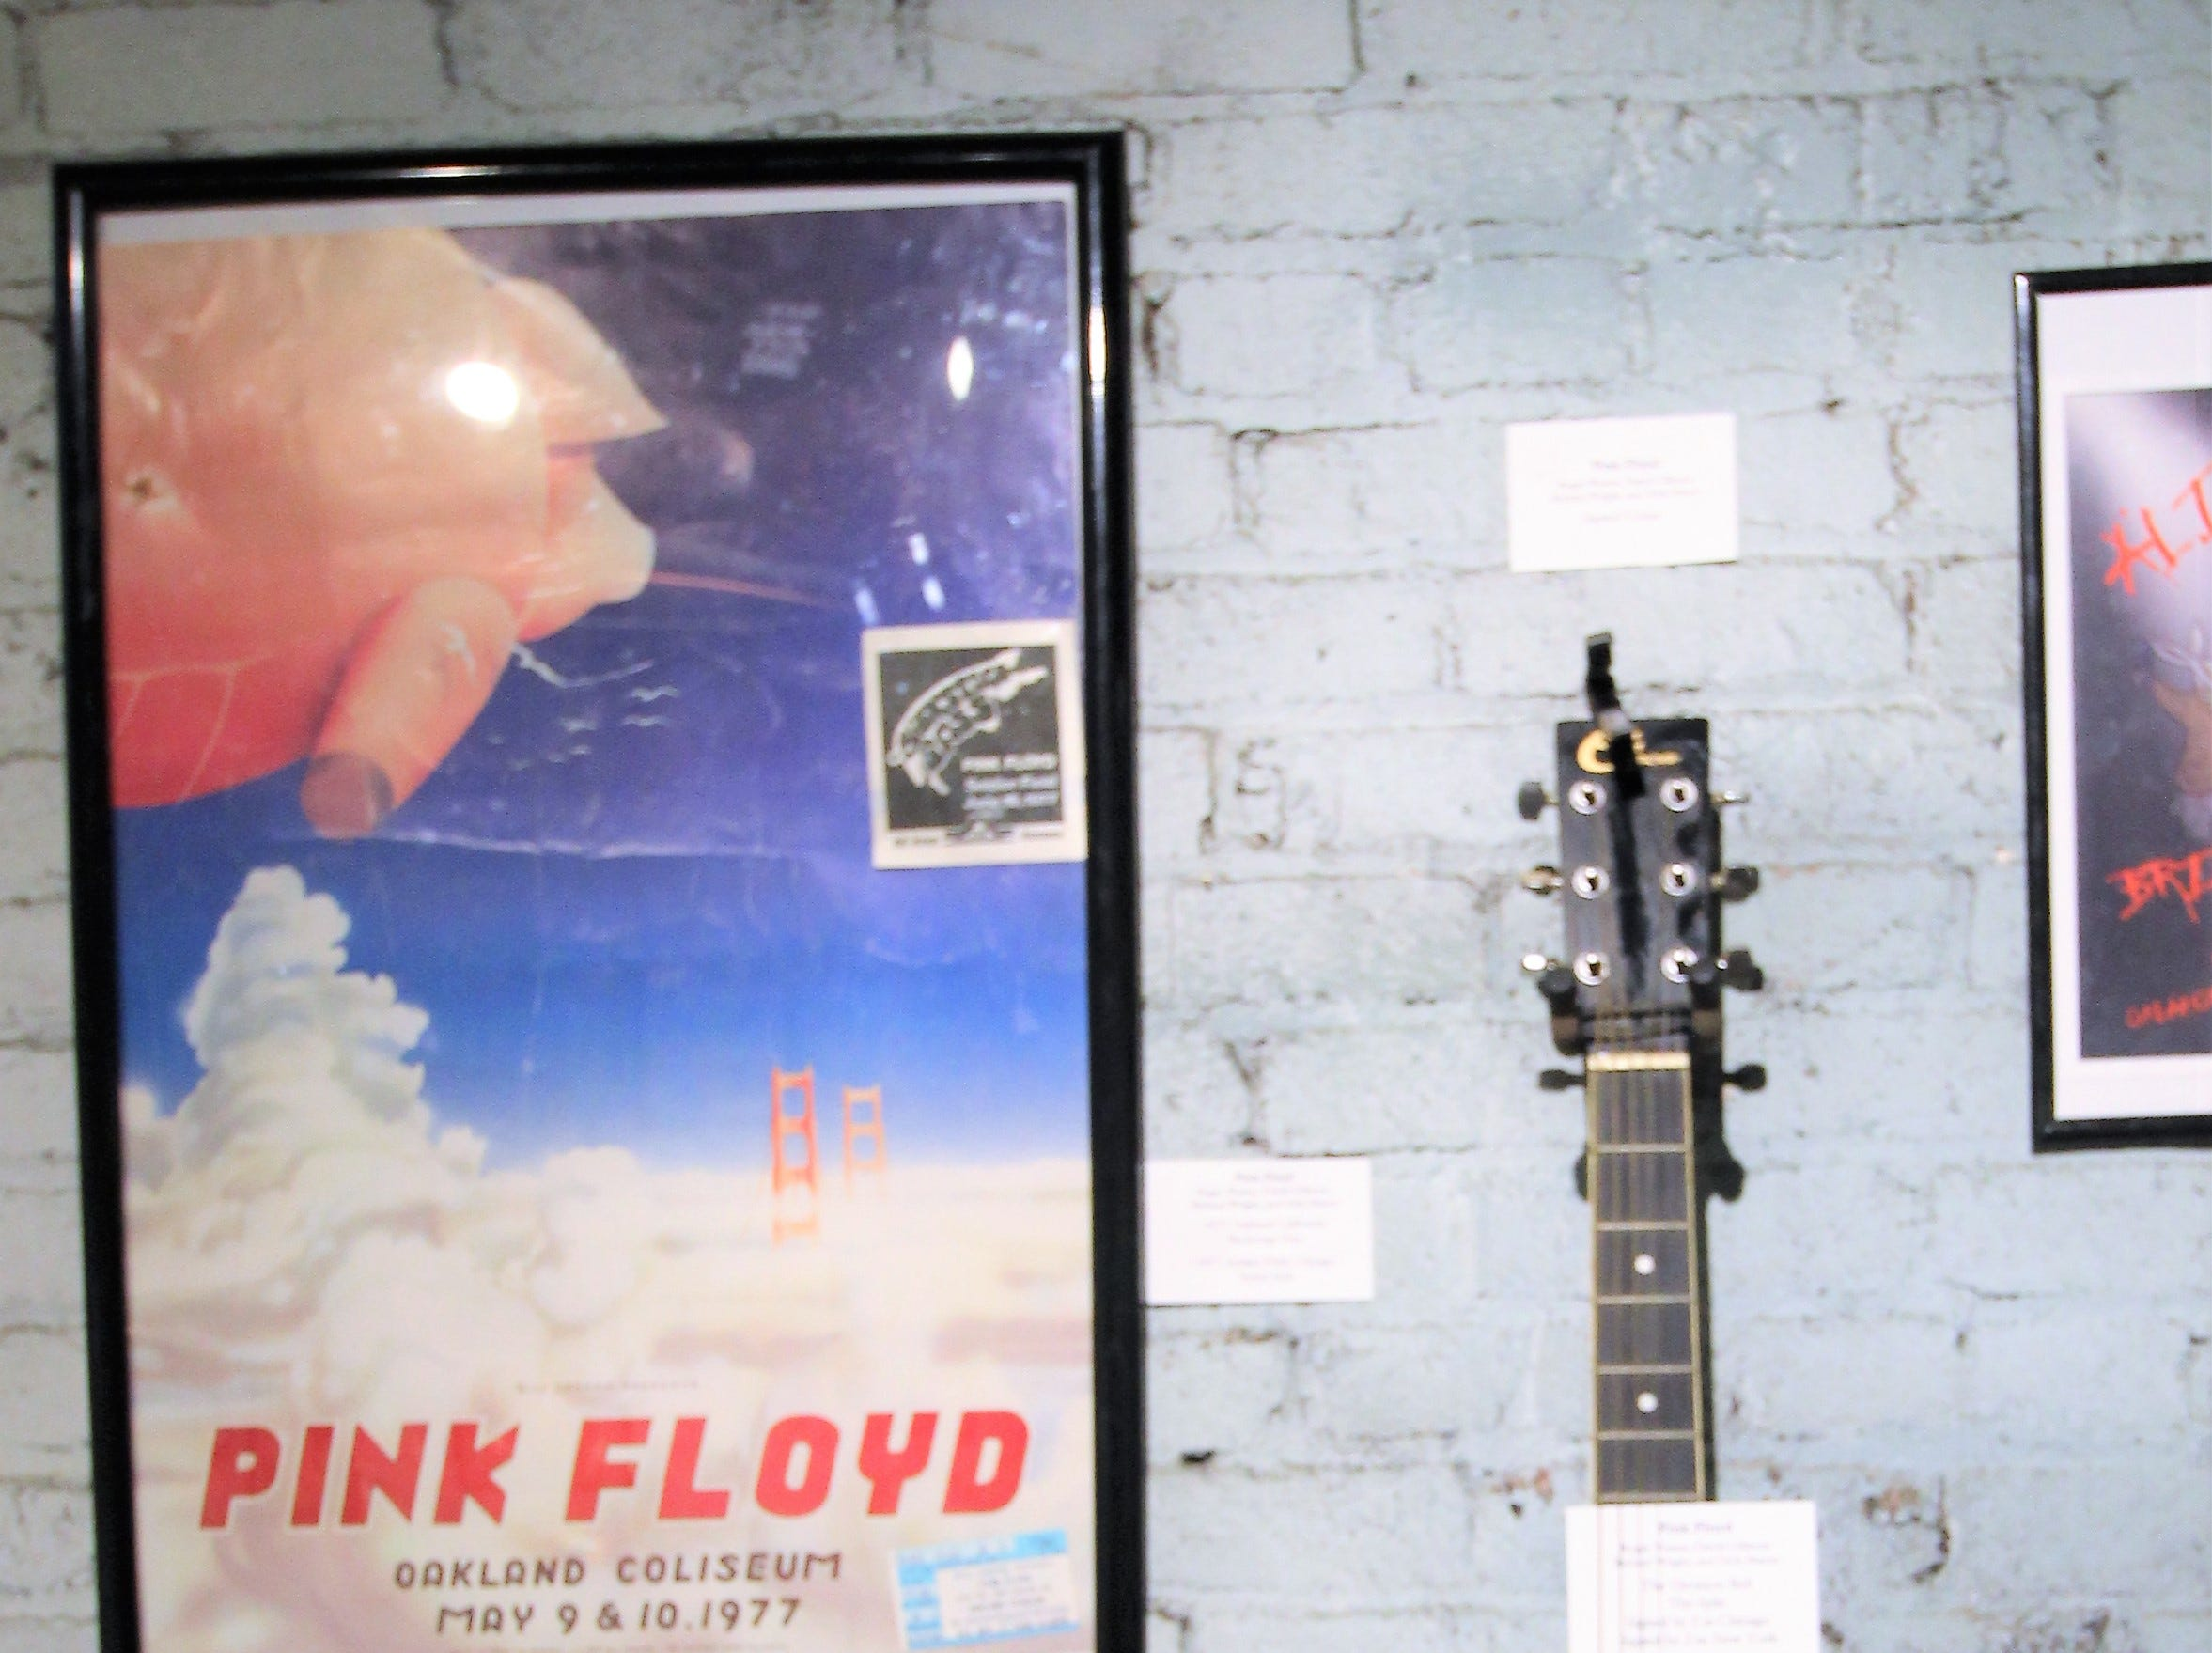 A singed guitar when the band had split. decades ago. It will remain on the wall at the Carrizozo Rock and Roll Hall of Fame.